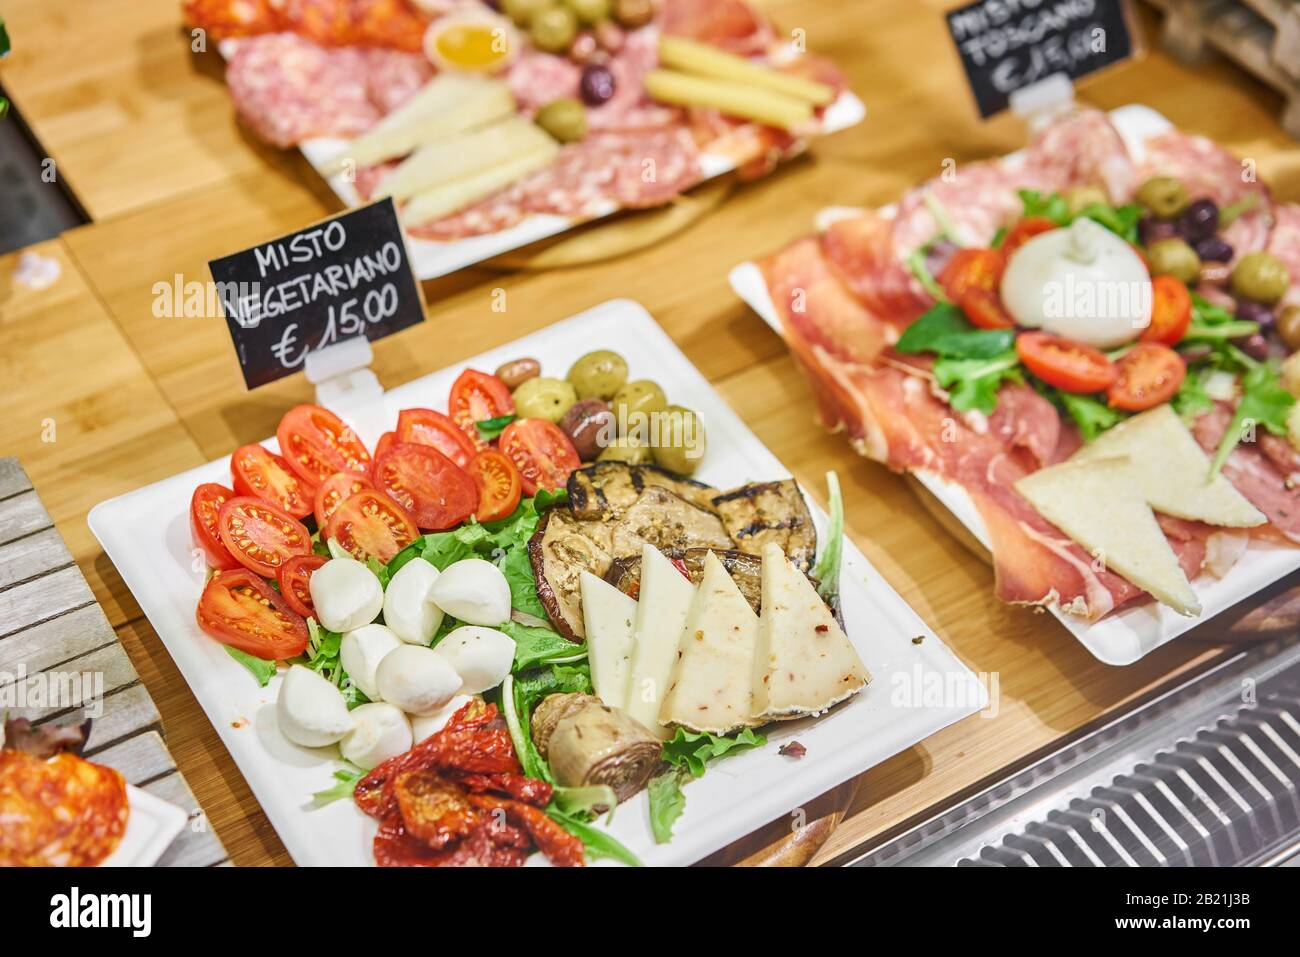 Vegan Menu Light Italian Snacks Cheese Plate With Tomatoes And Olives Delicious Cheese Mix On Wooden Plate Street Food Market In Florence Italy Stock Photo Alamy